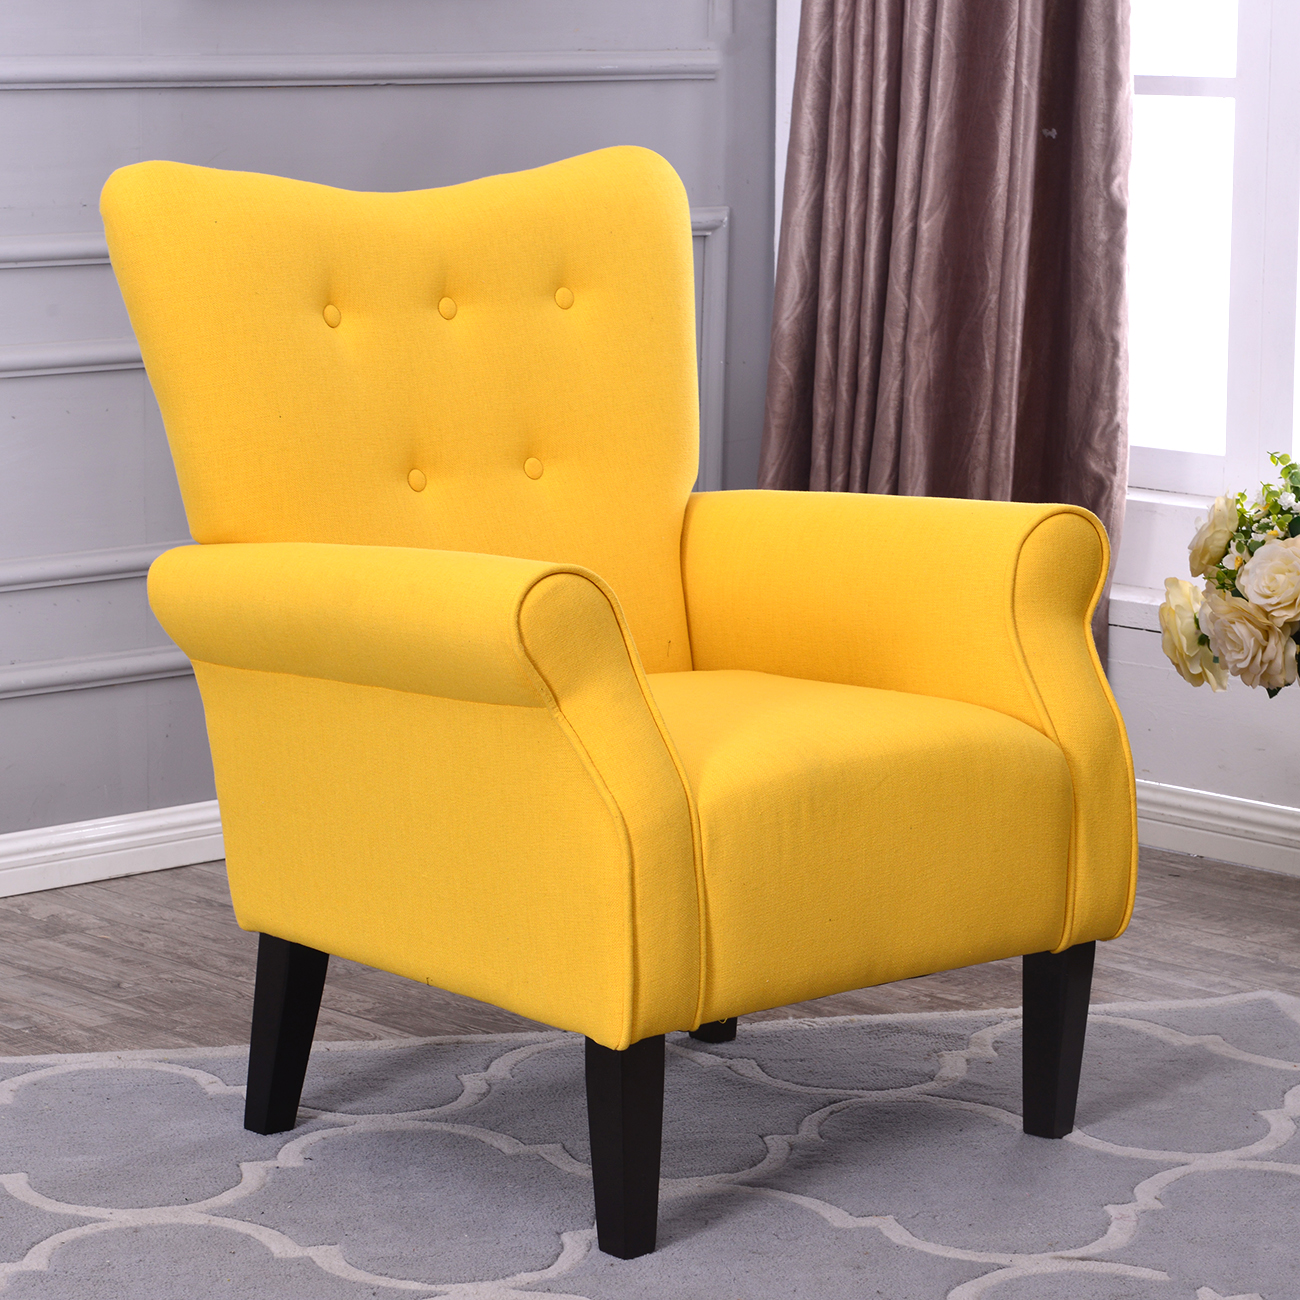 Belleze Modern Accent Chair Roll Arm Linen Living Room Bedroom Wood Leg  (Citrine Yellow) - Traveller Location